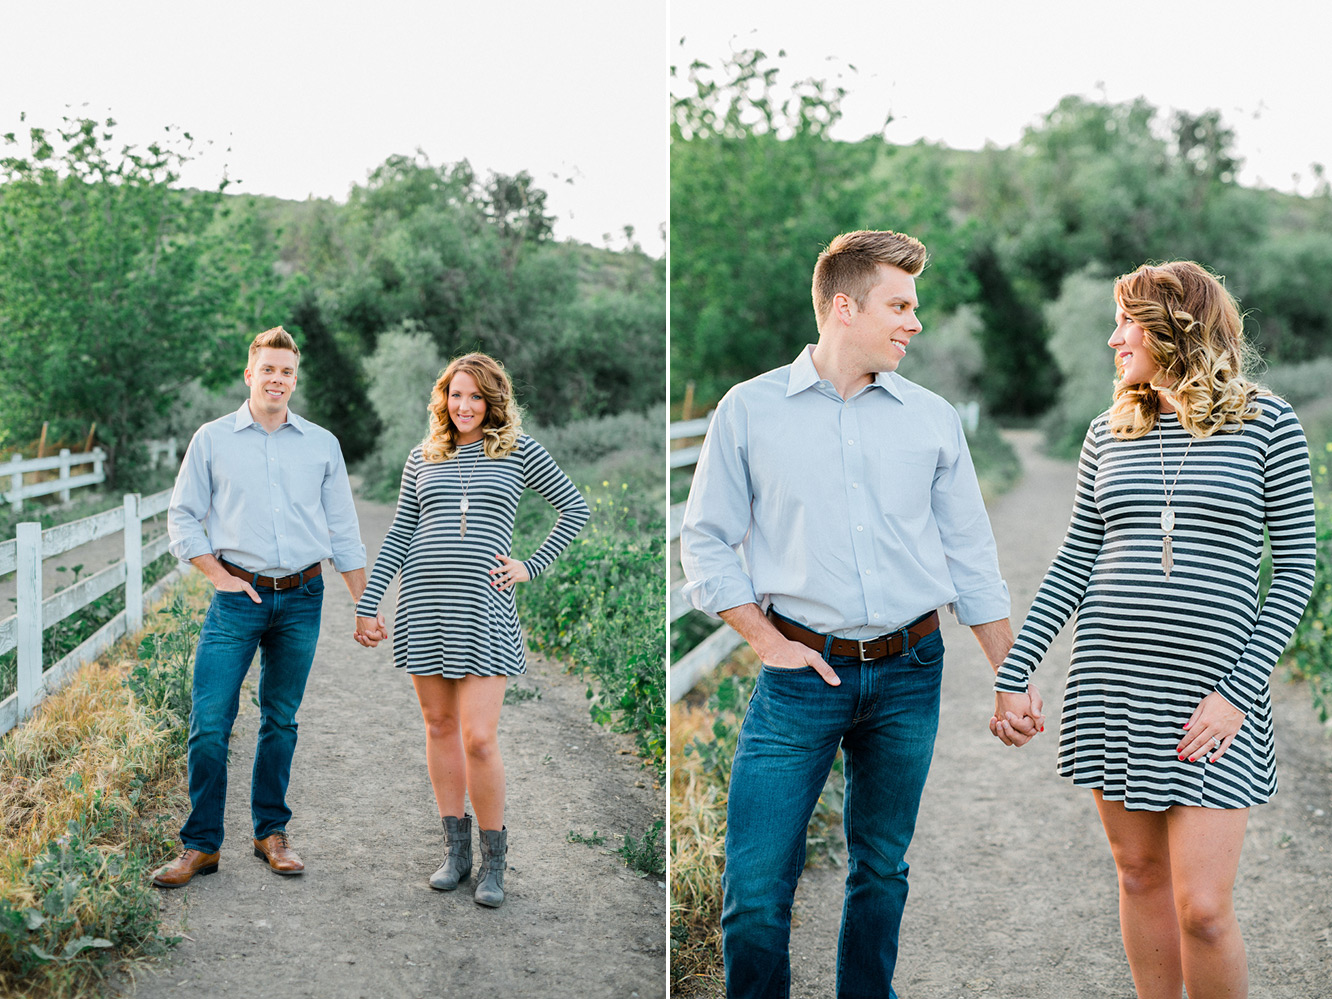 palos-verdes-maternity-photos-1025